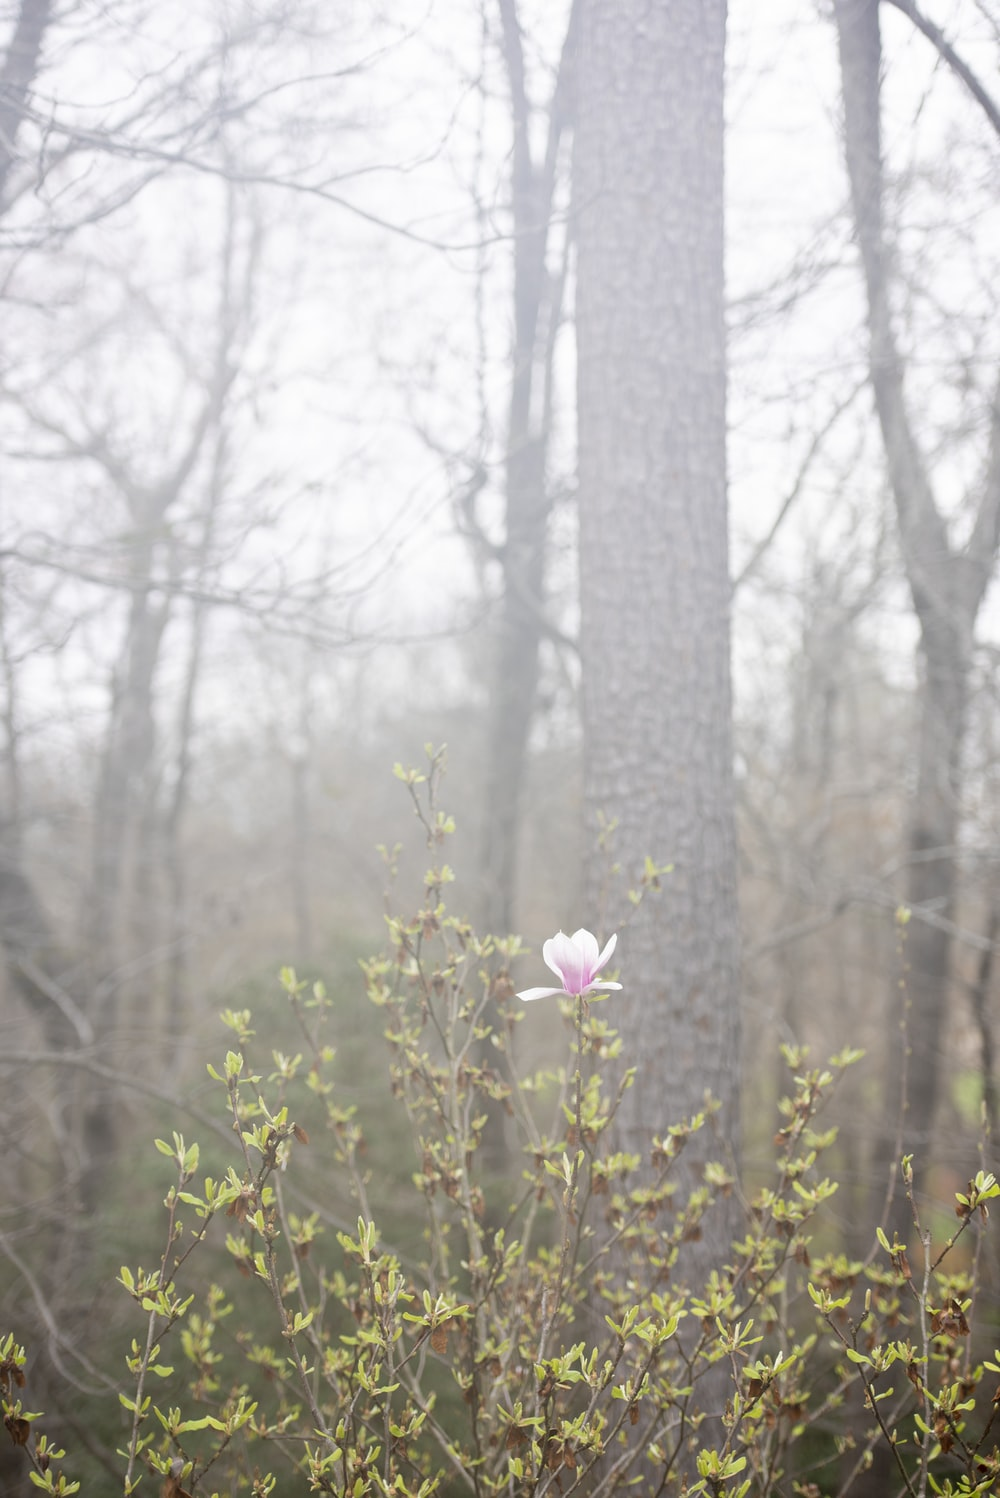 white flower in the forest during daytime